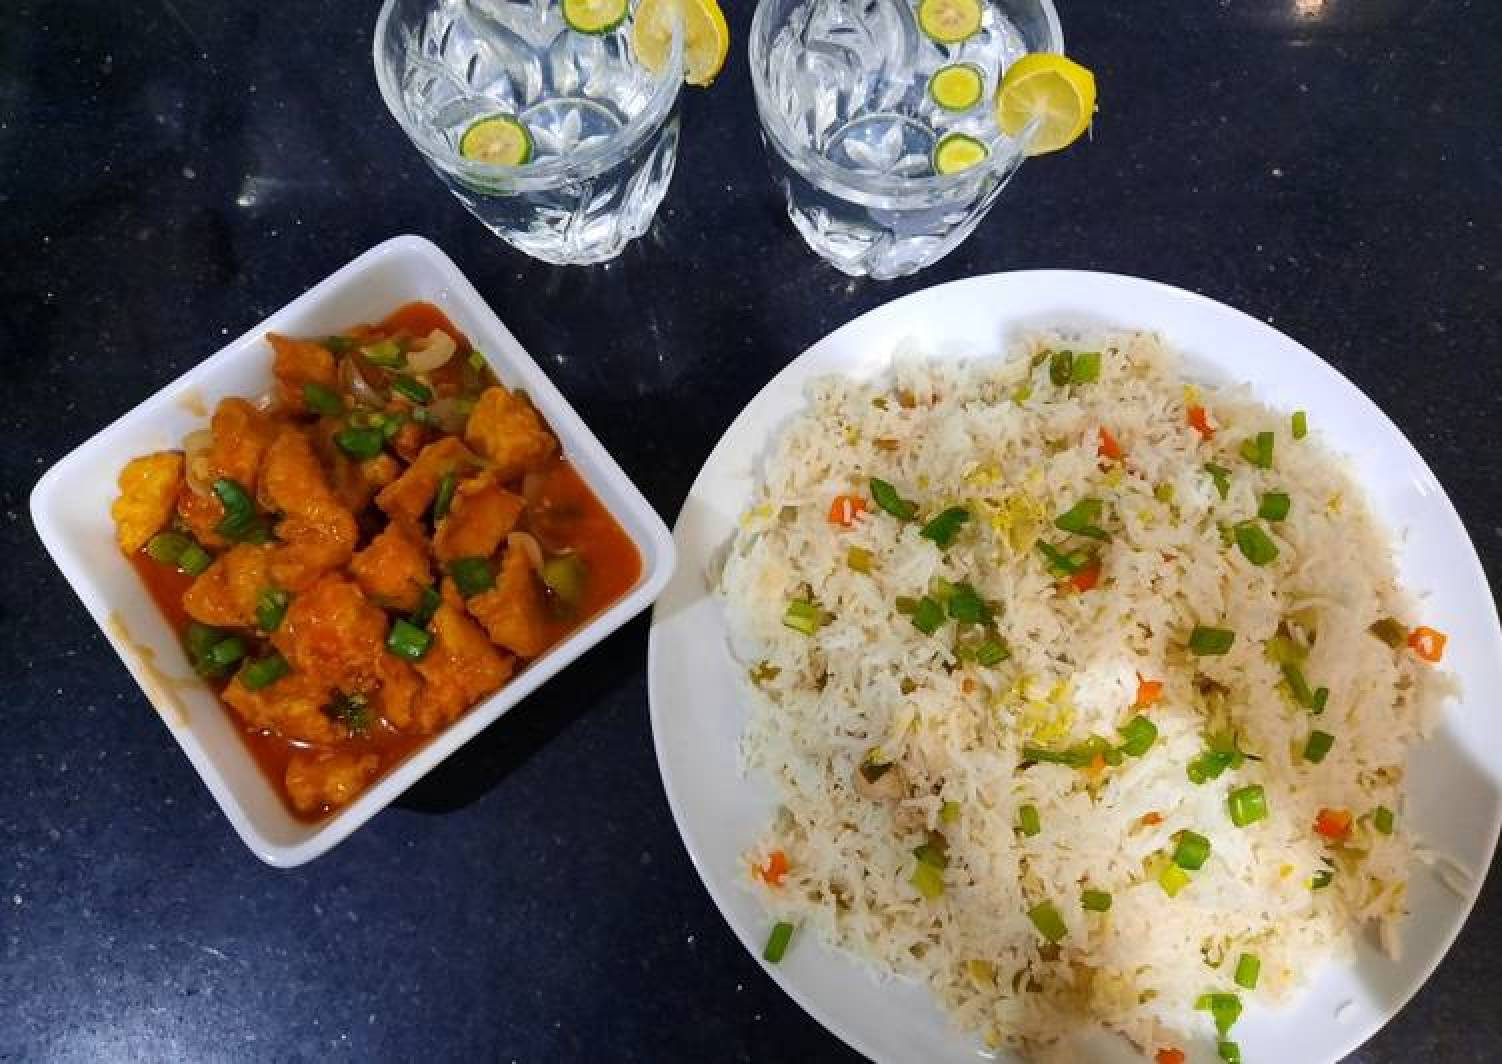 Chicken manchurian and egg vegetable fried rice with fresh lime